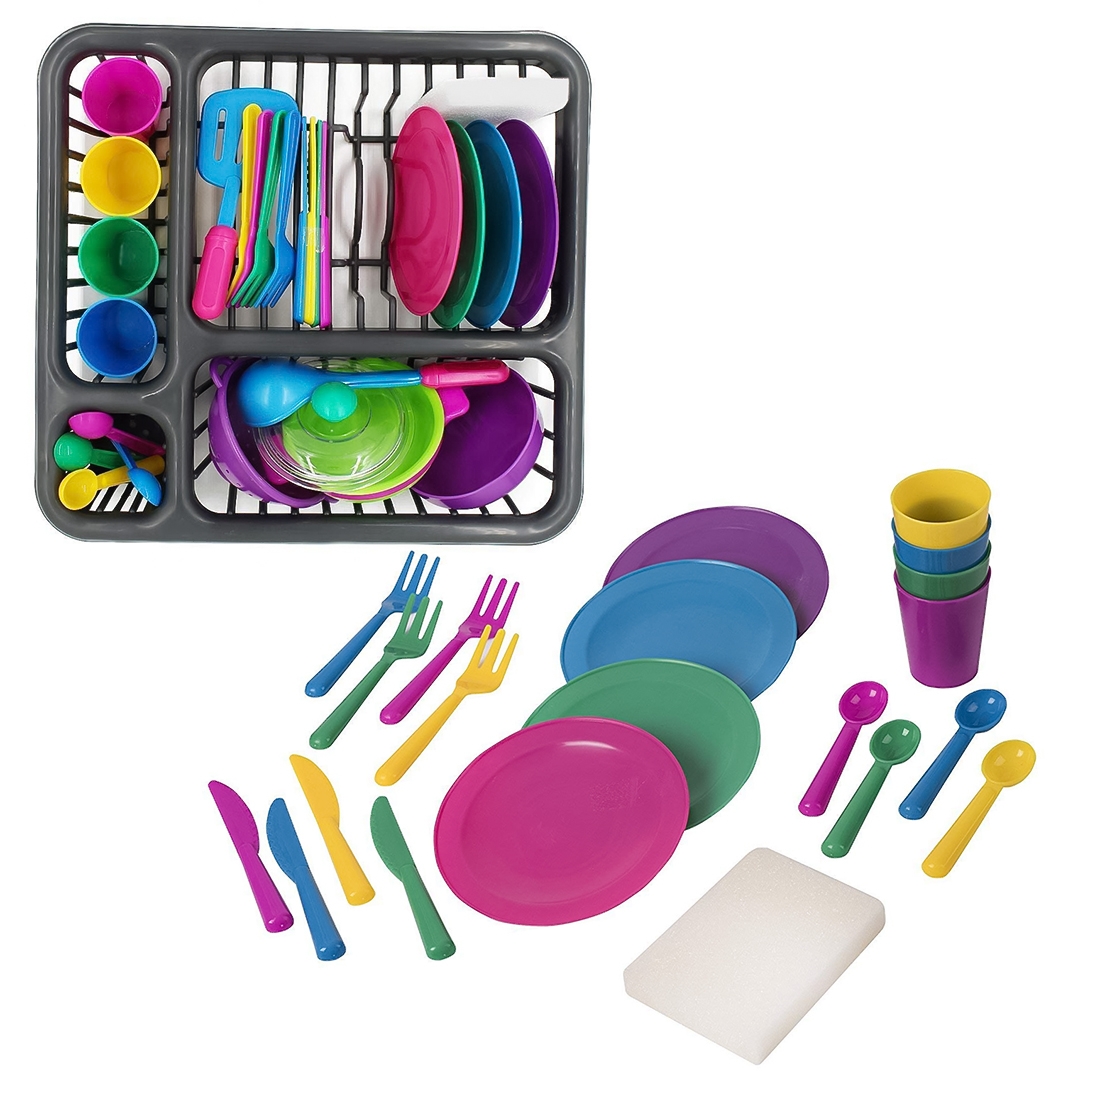 US $11.55 32% OFF|28pcs Kids Kitchen Set Pretend Play Kitchen Utensils Toys  Educational Kids Toy Artificial Tableware Cooking Children Playset-in ...